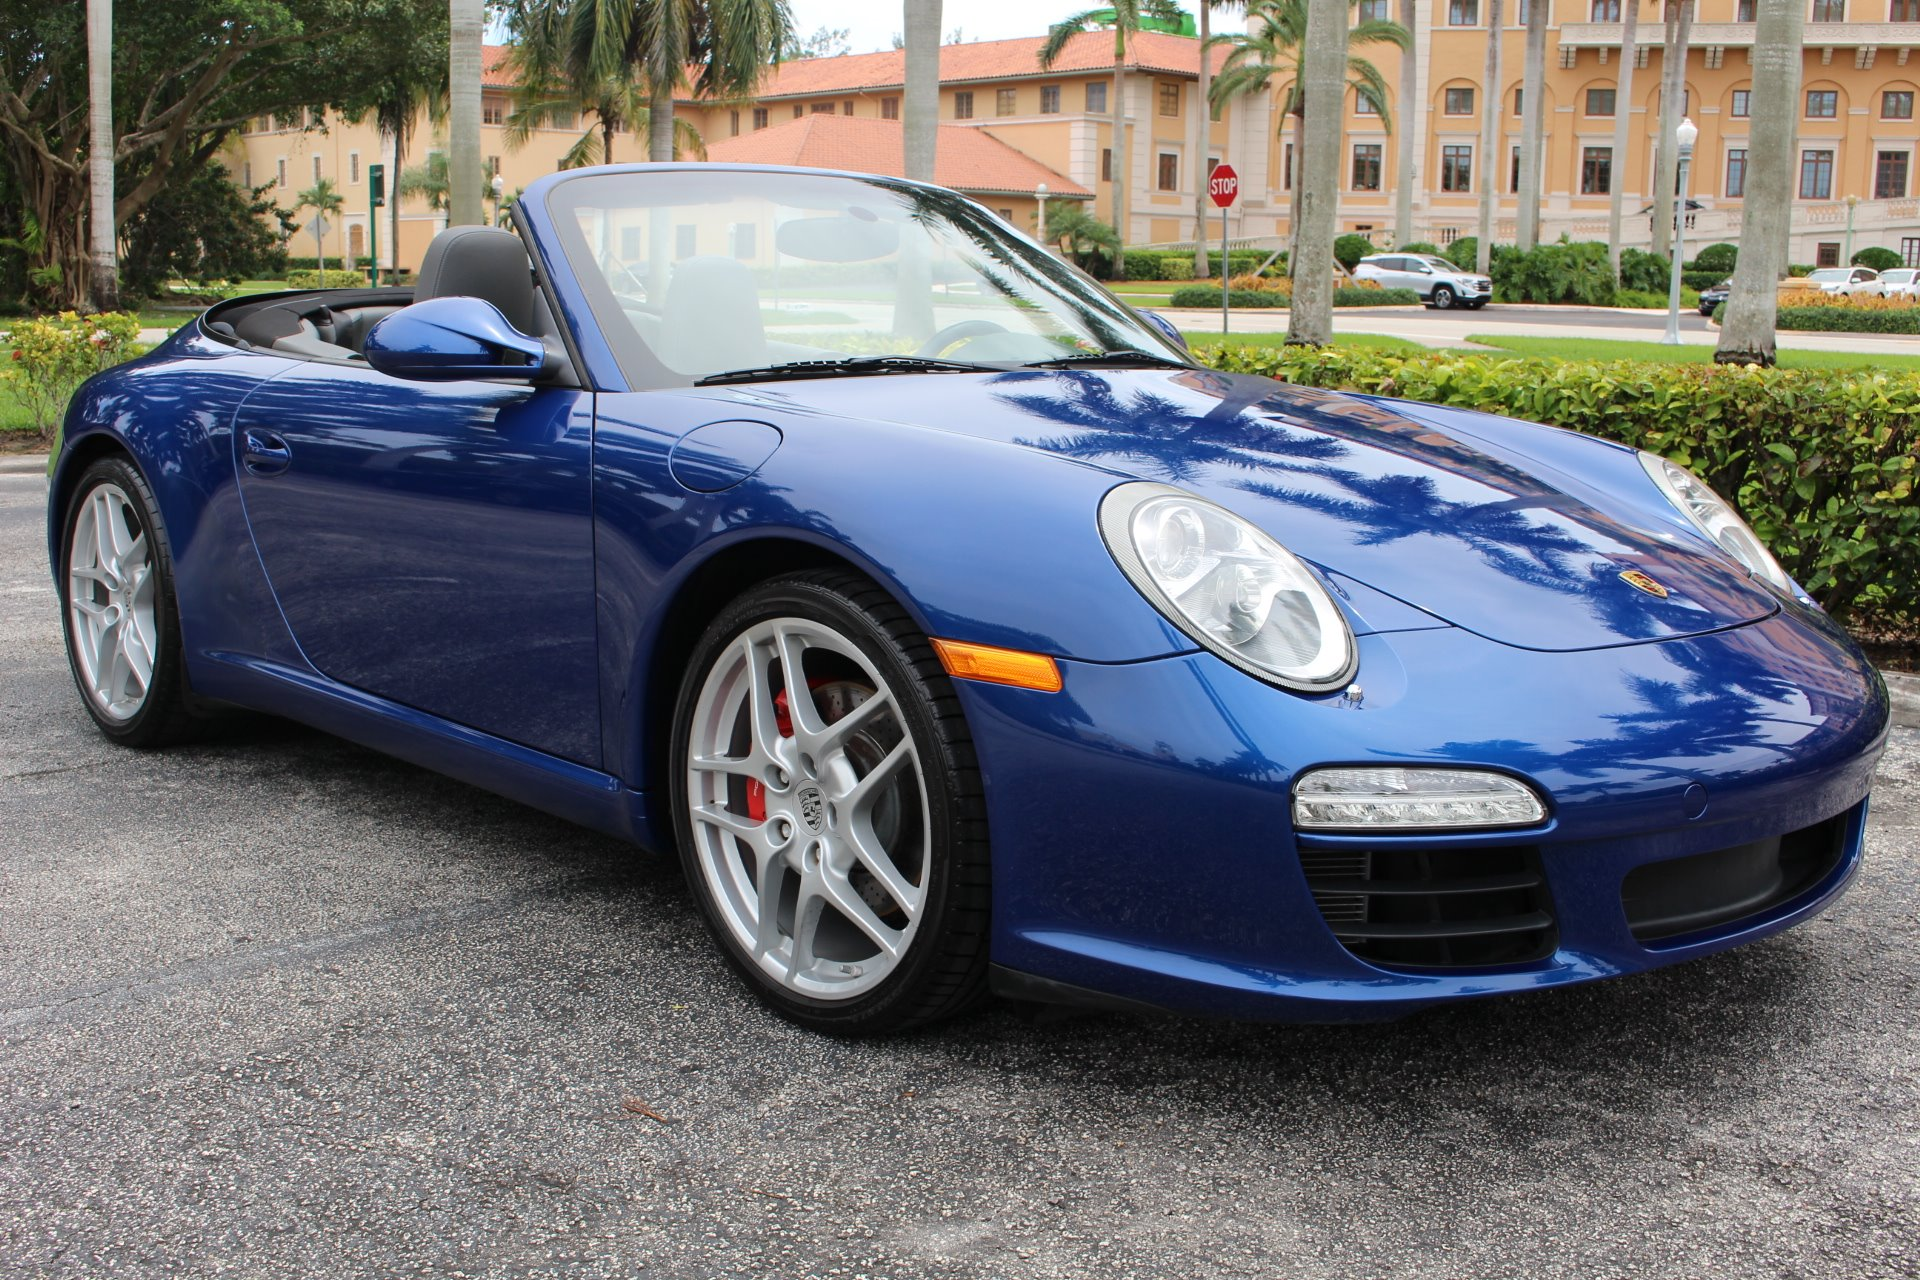 Used 2009 Porsche 911 Carrera S for sale $47,850 at The Gables Sports Cars in Miami FL 33146 4